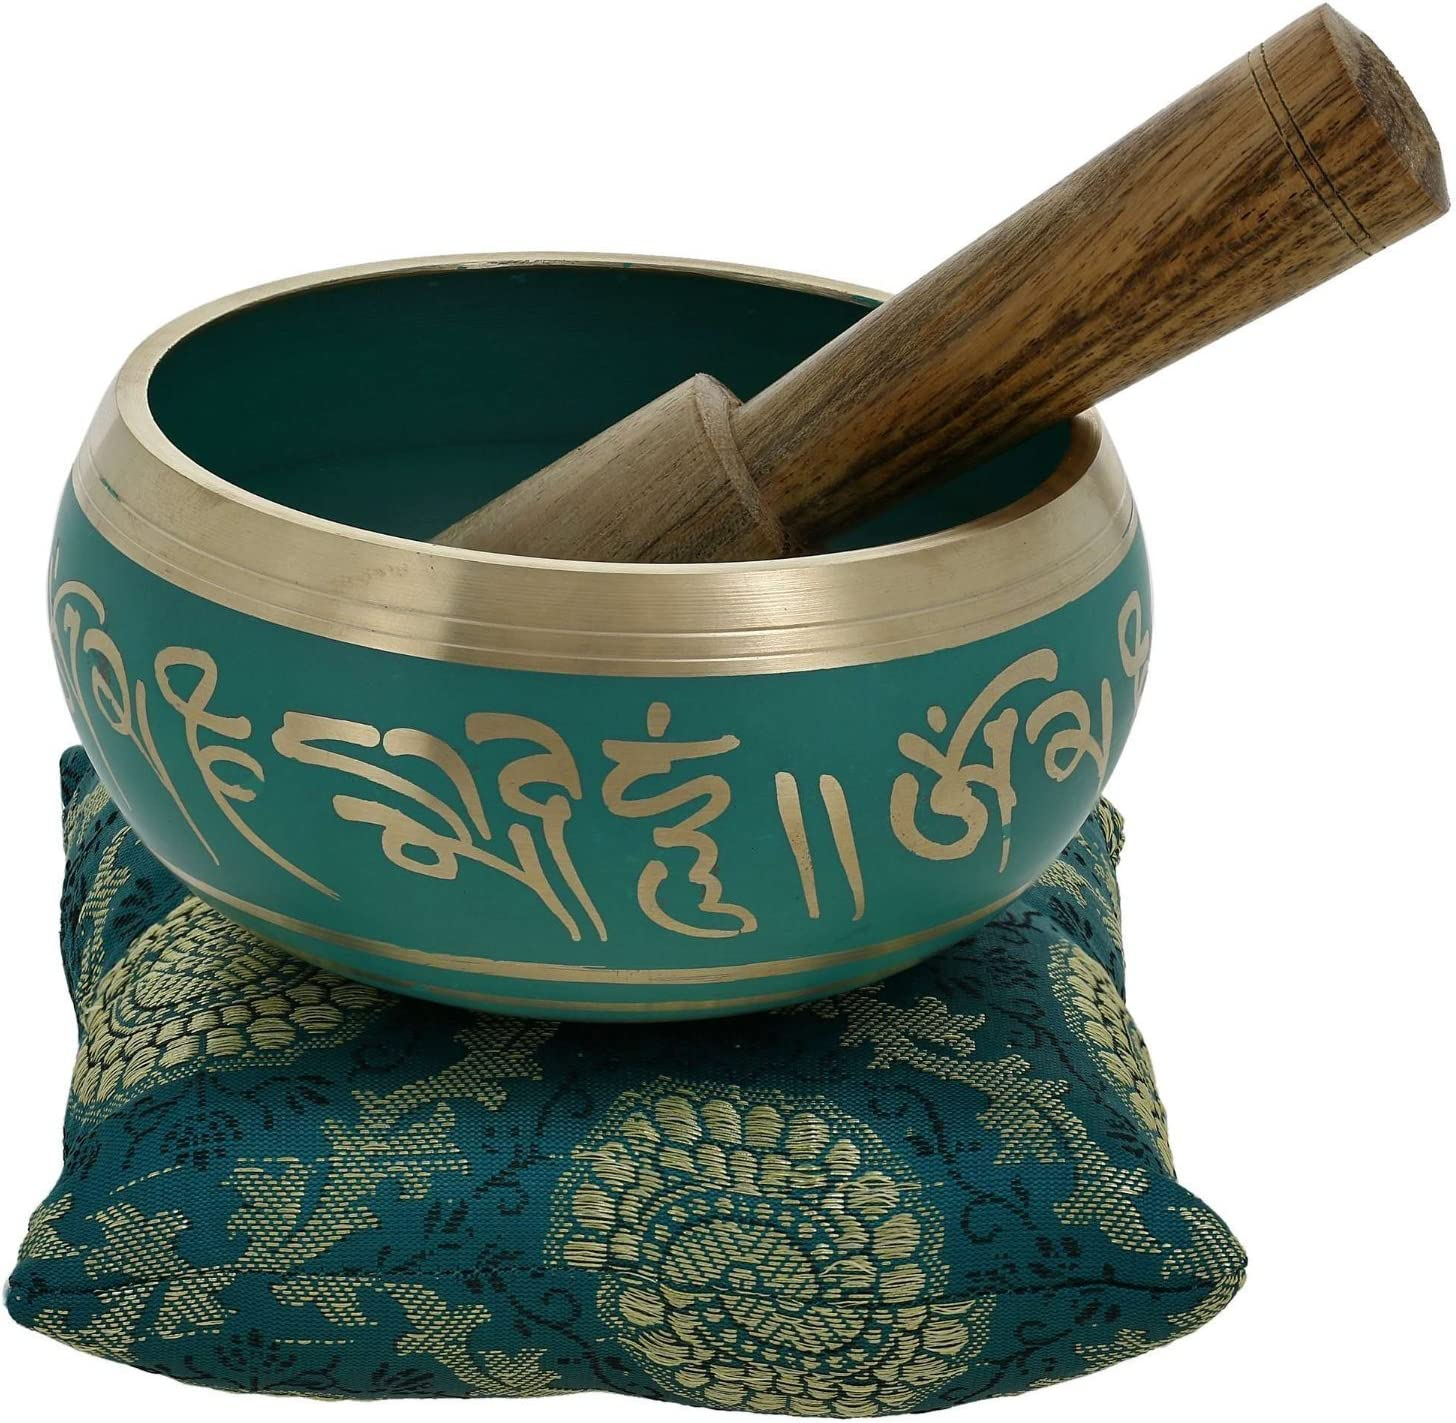 Thanksgiving Outstanding Black Friday Gifts Meditation Bowl Buddhist Singing Albuquerque Mall